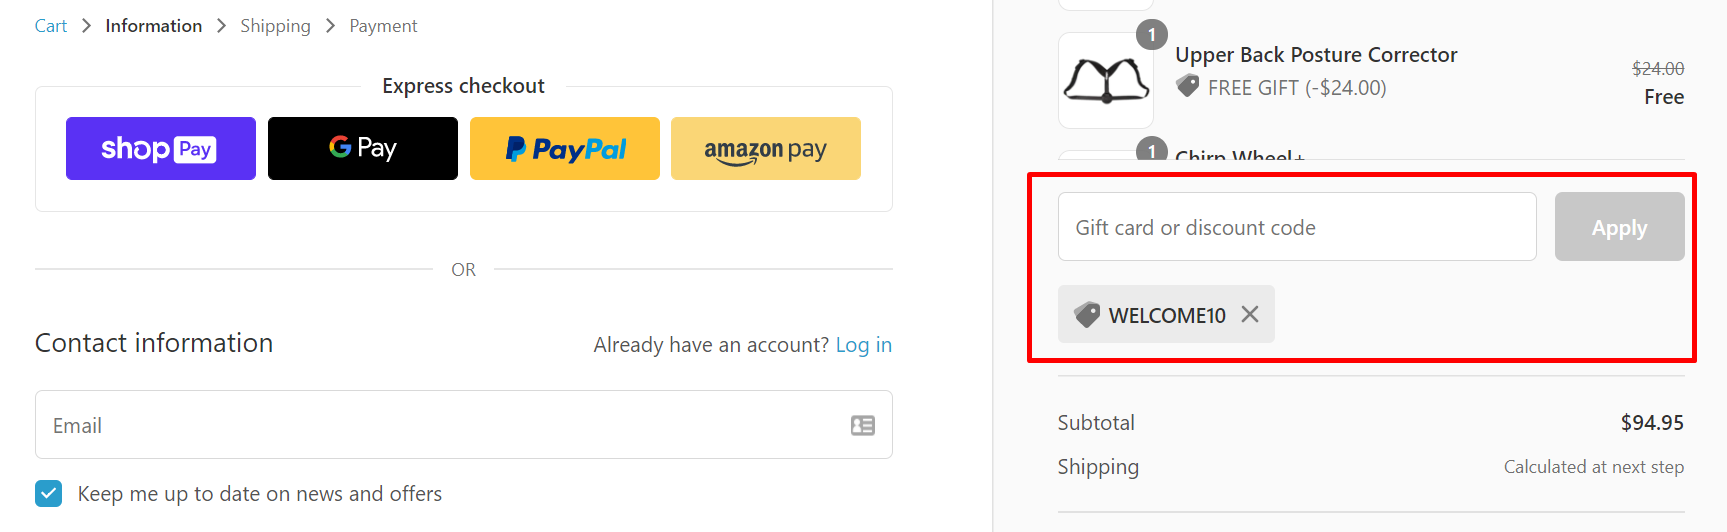 How do I use my Chirp discount code?